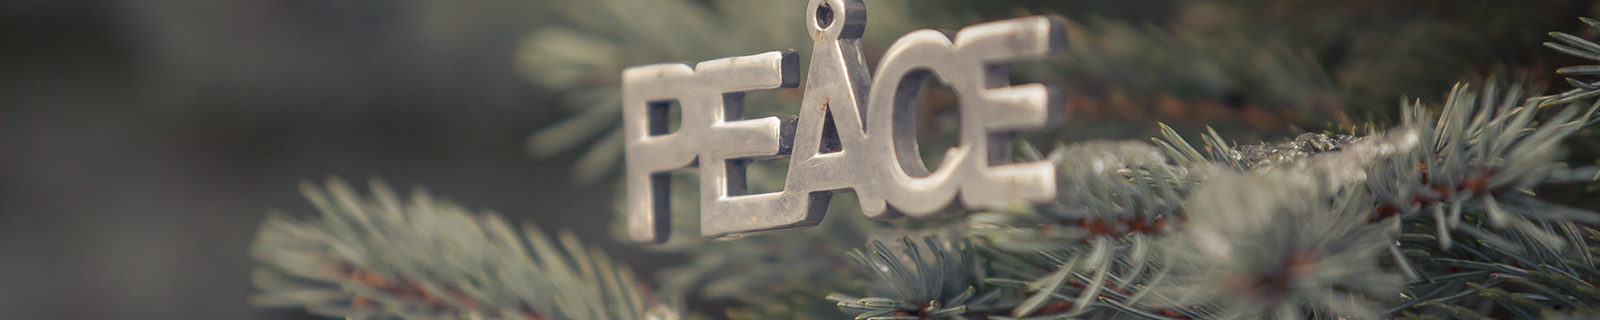 Christmas ornament that spells out PEACE